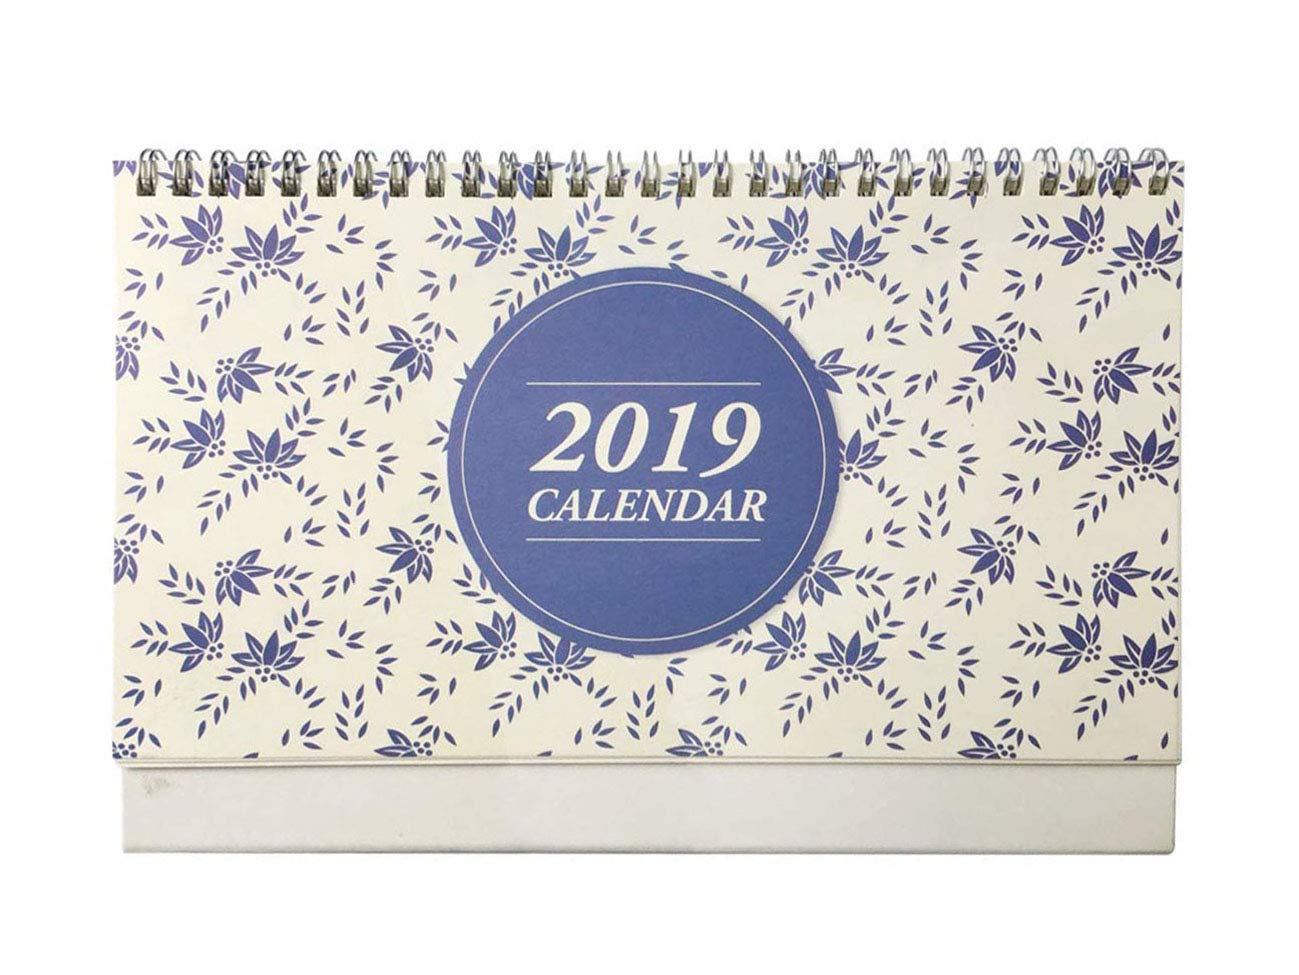 Desk Calendar 2018-2019, Runs from October 2018 to December 2019, Twin-Wire Binding, Desktop Calendar Monthly Planner Daily Calendar Planner for School, Office, Home Use - Blue Flower Patter